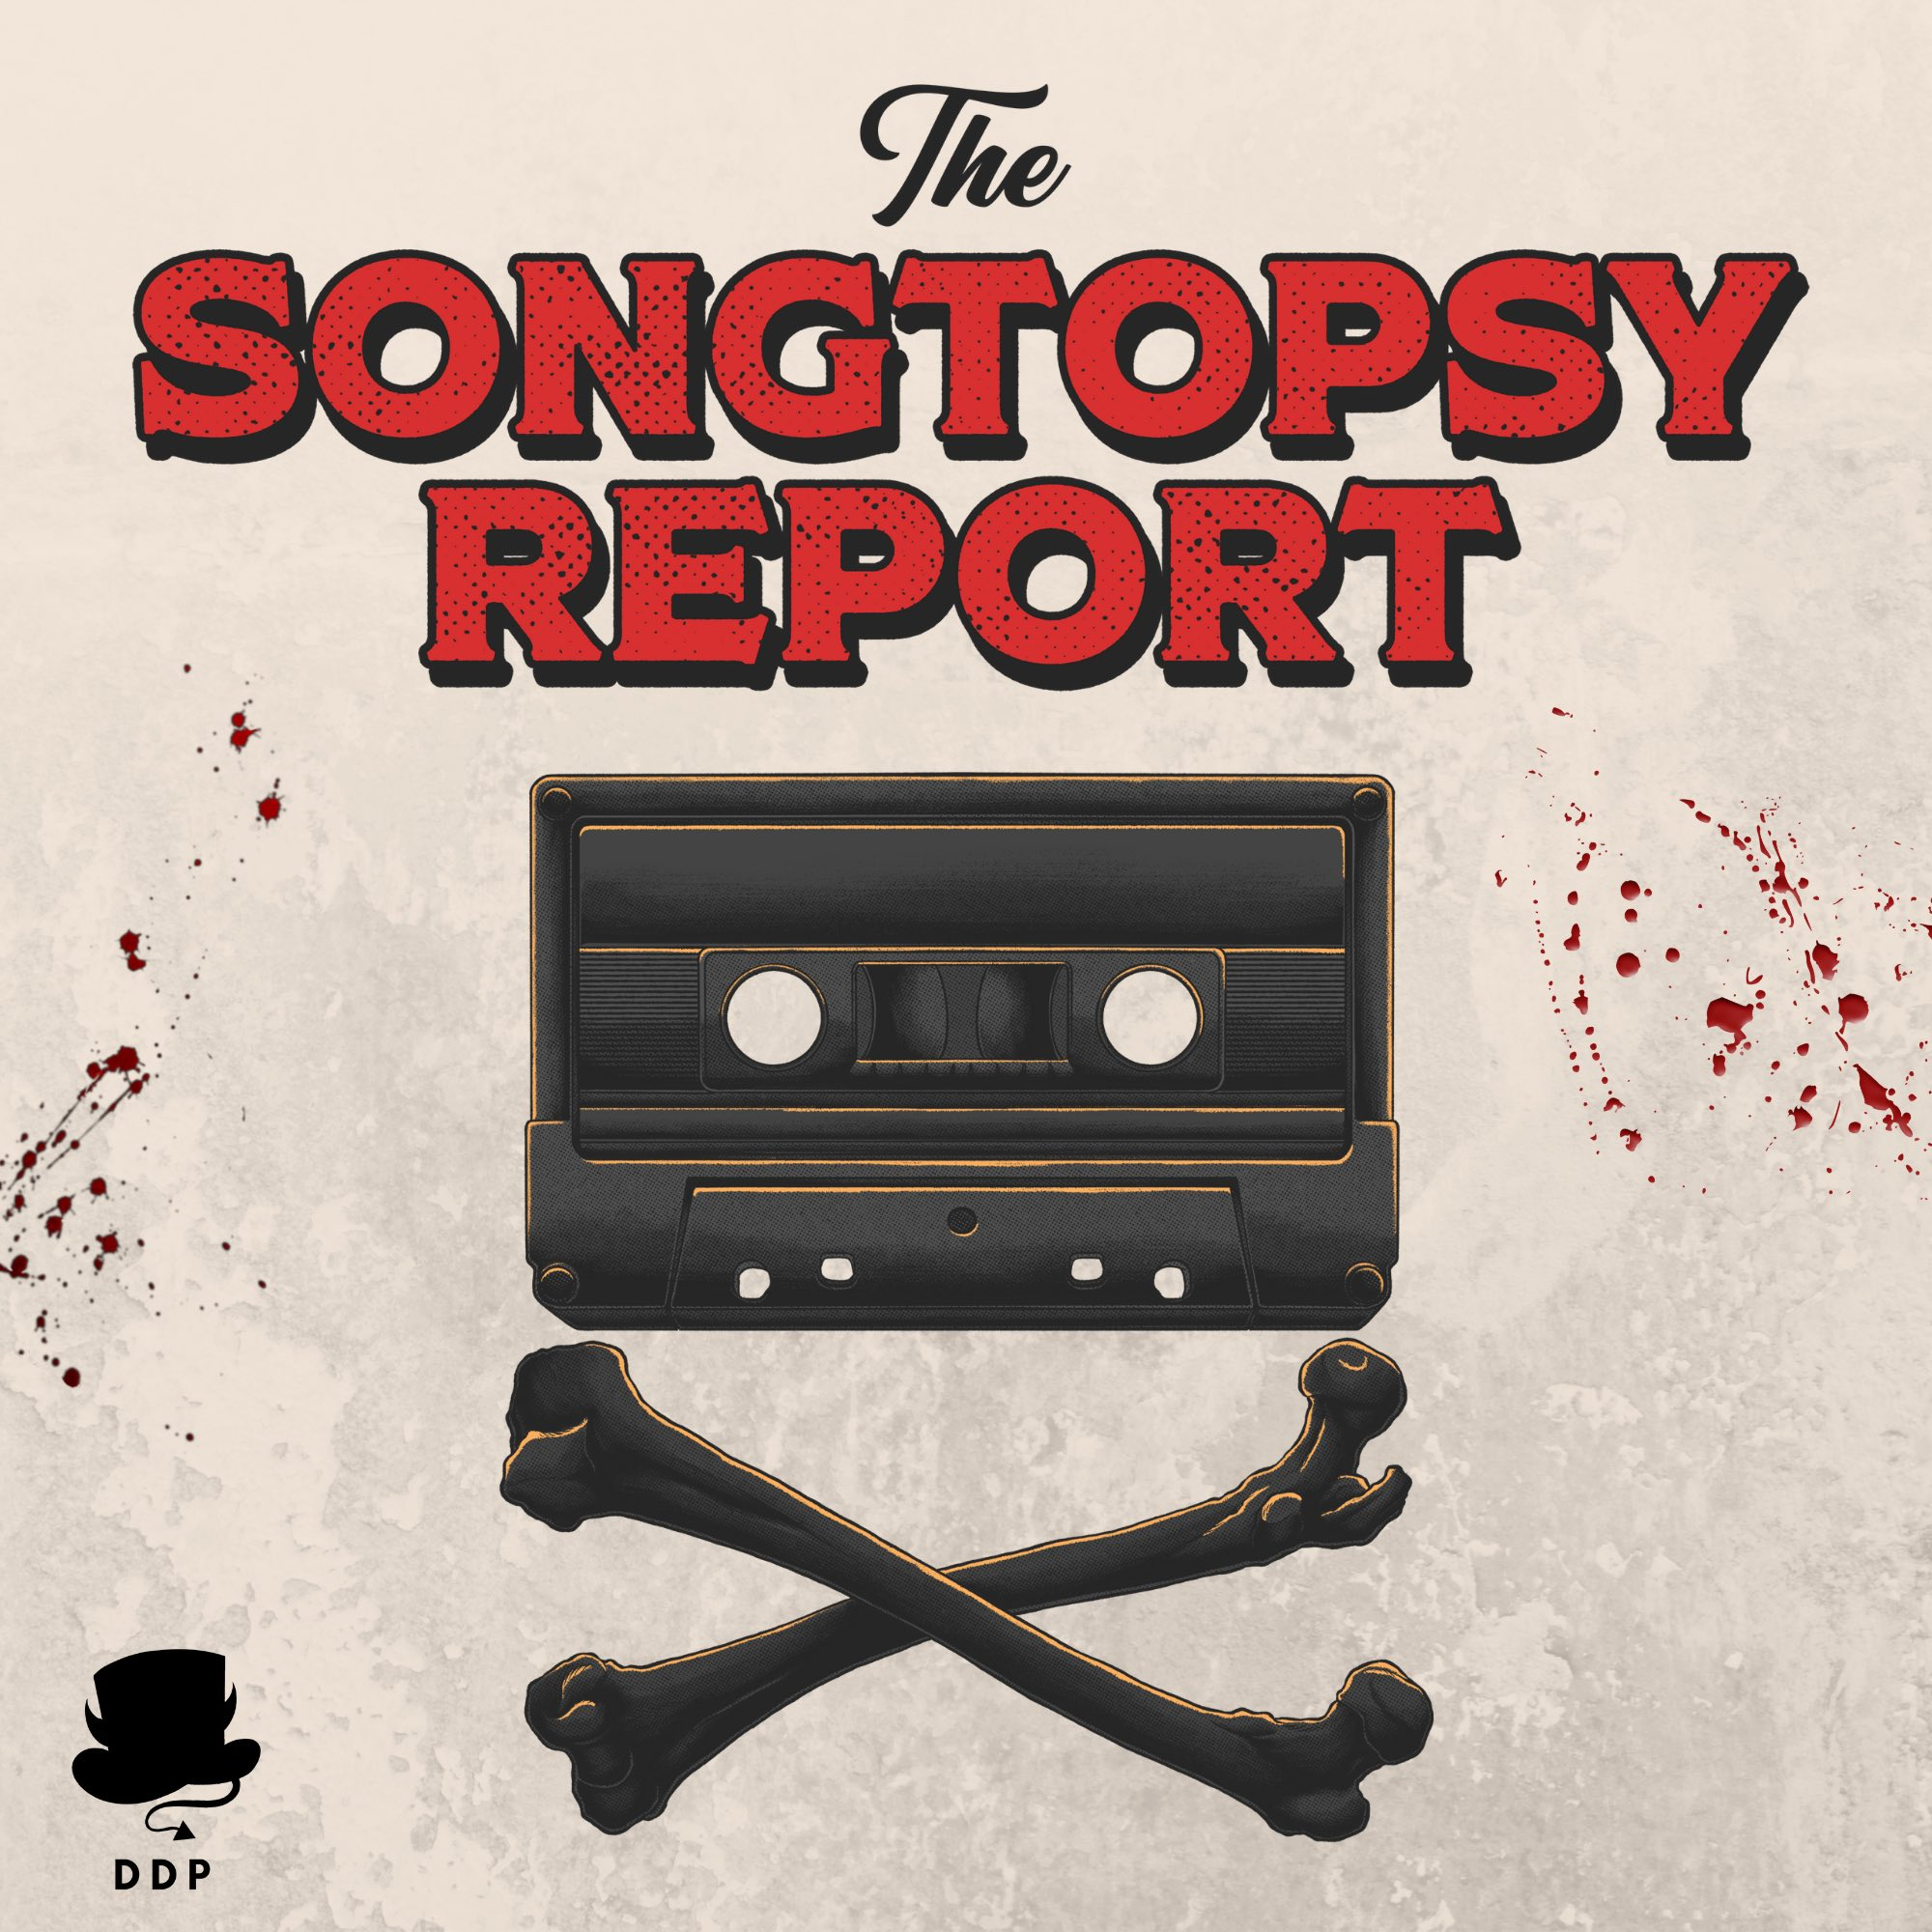 The Songtopsy Report show art